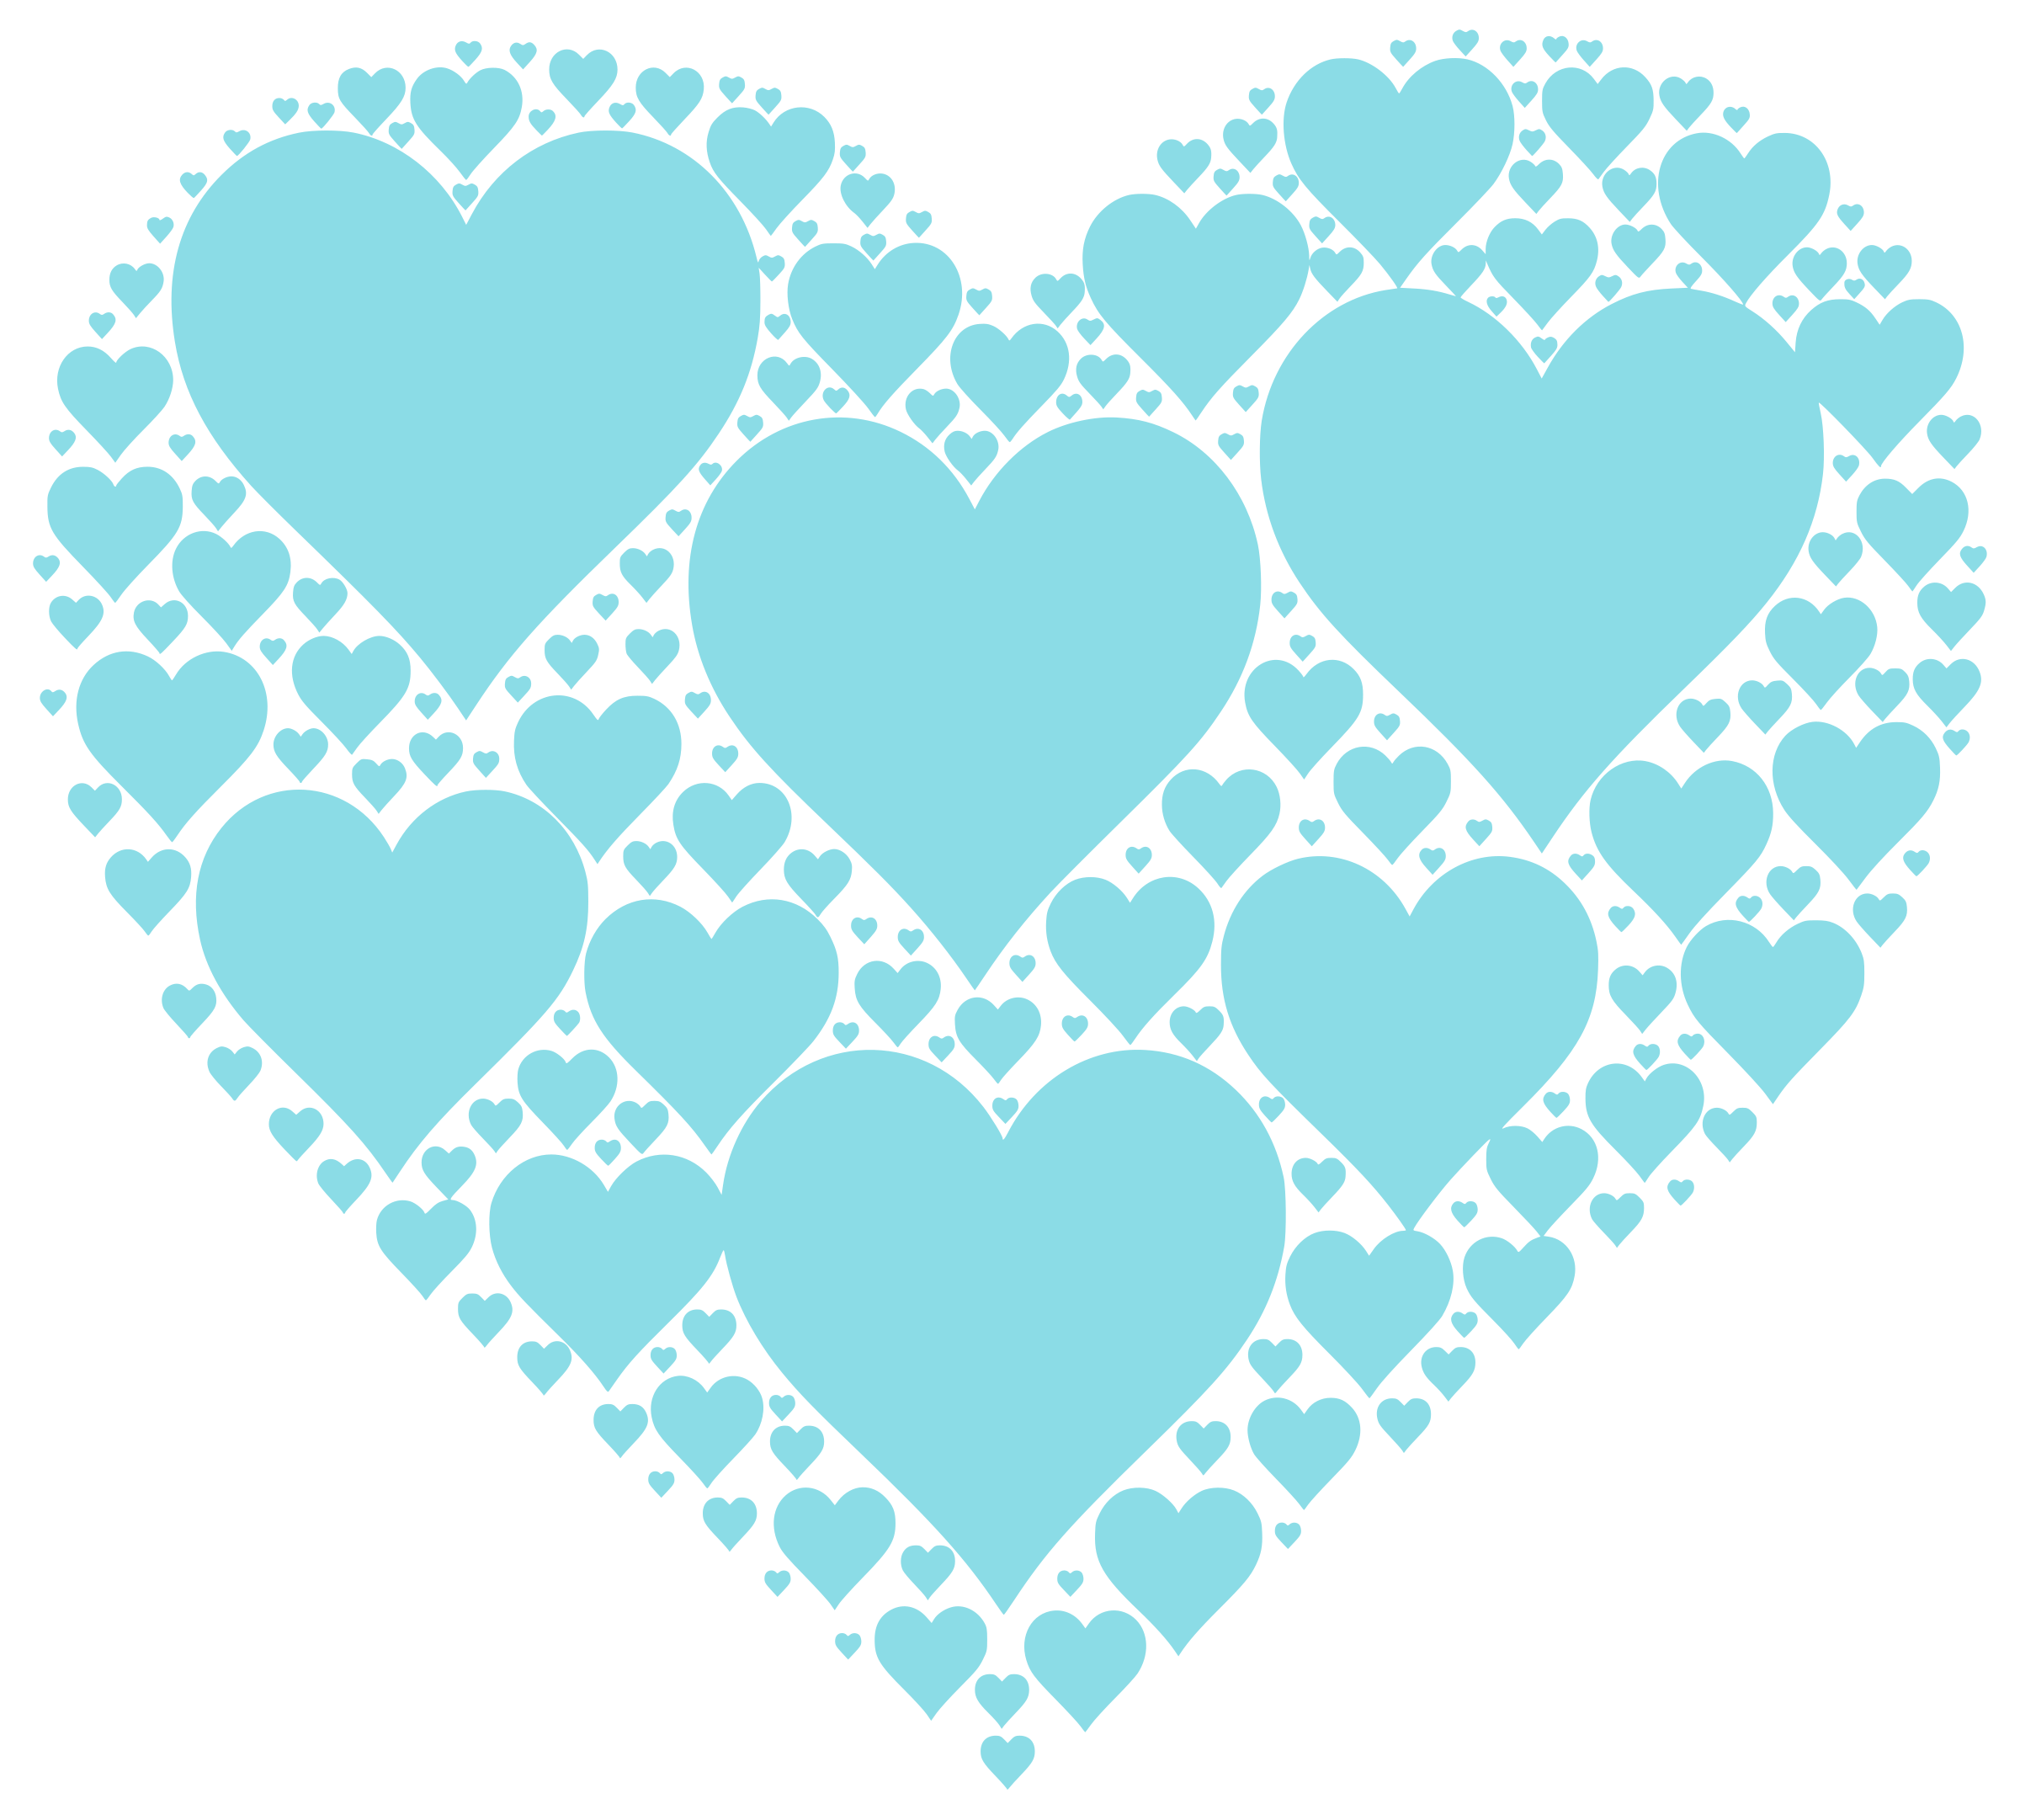 Teal heart clipart jpg royalty free library Clipart - Hearts In Heart - Cyan jpg royalty free library